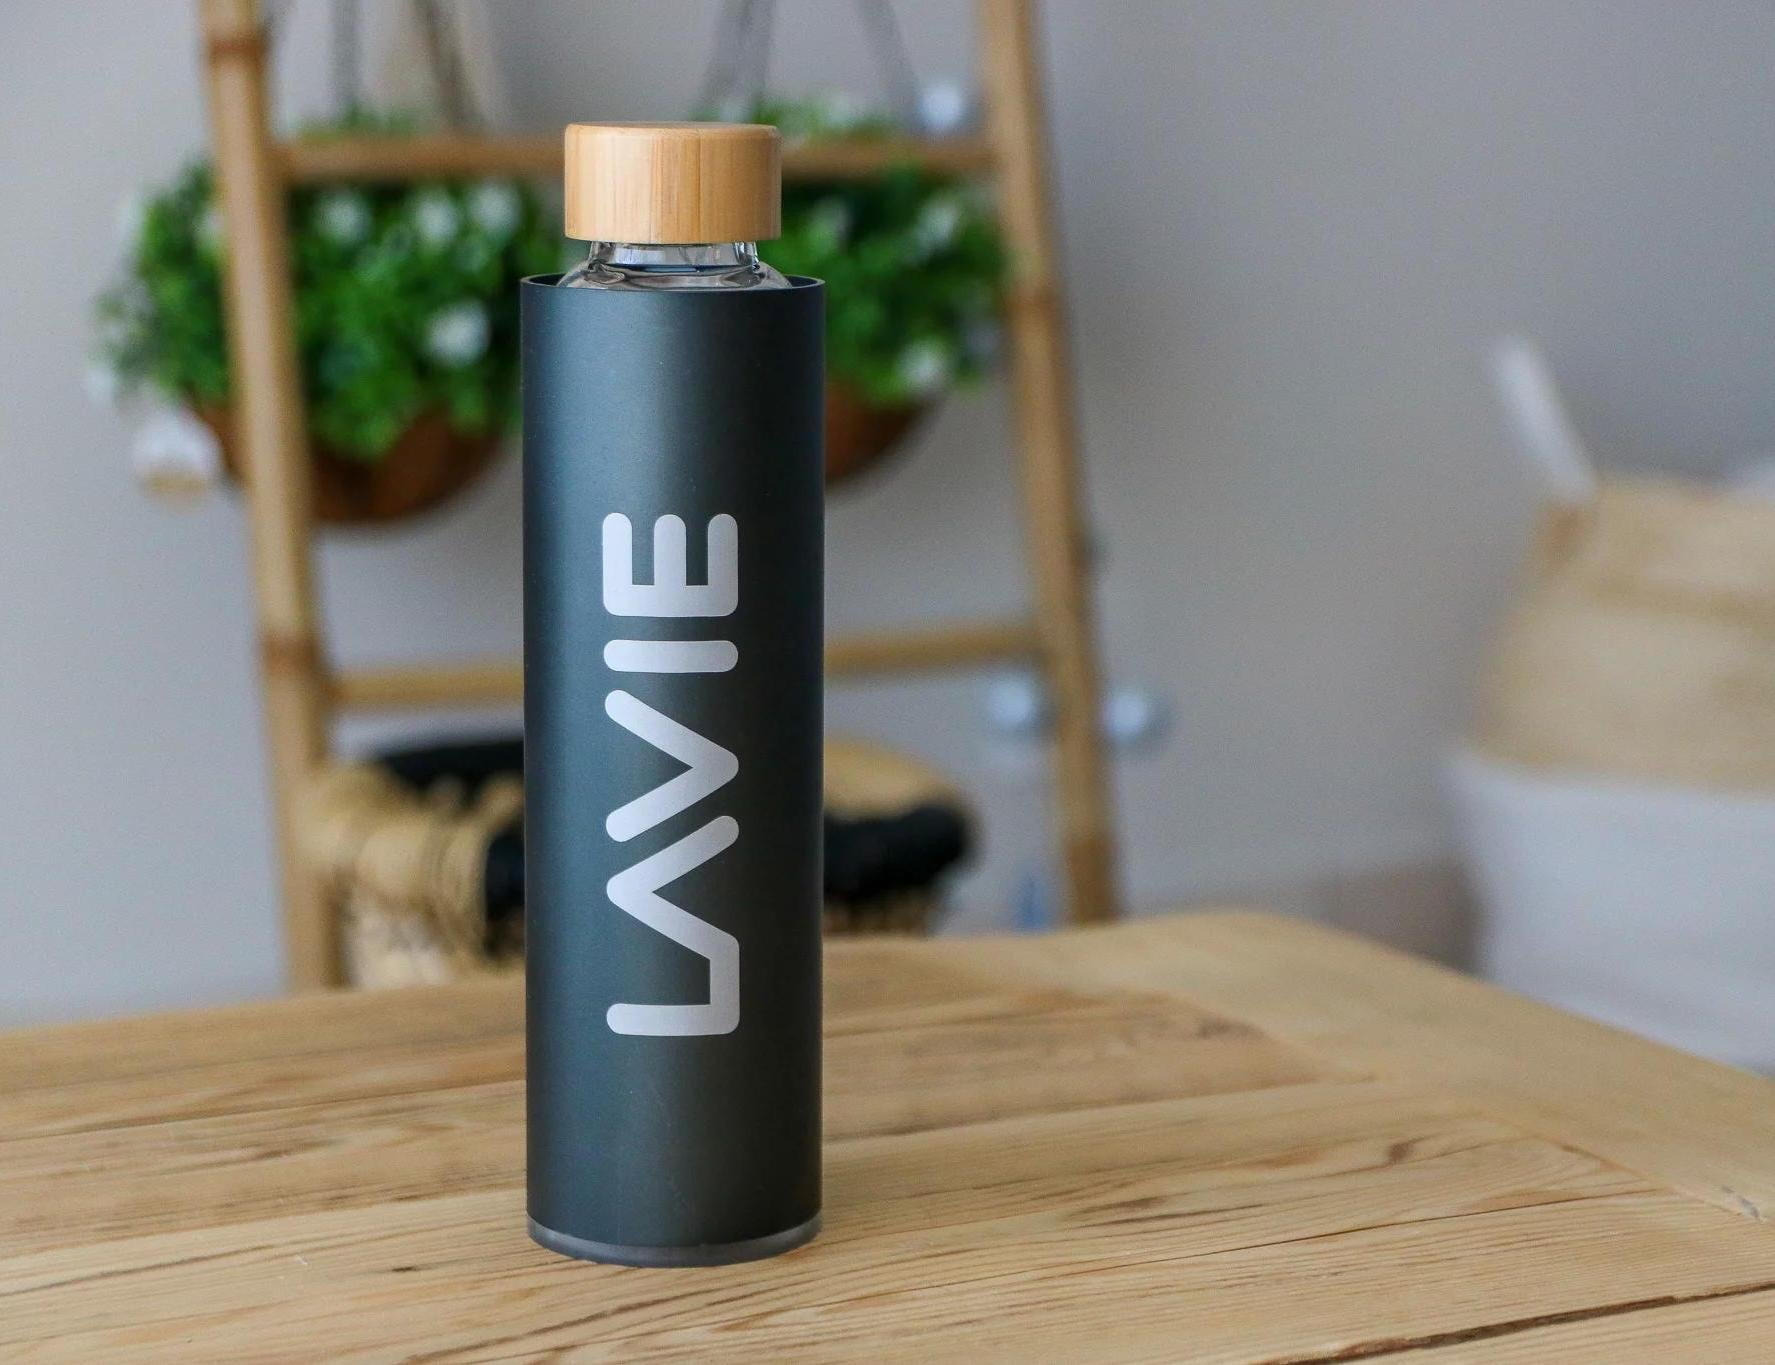 LaVie 2GO Purifying Water Bottle improves the taste of tap water